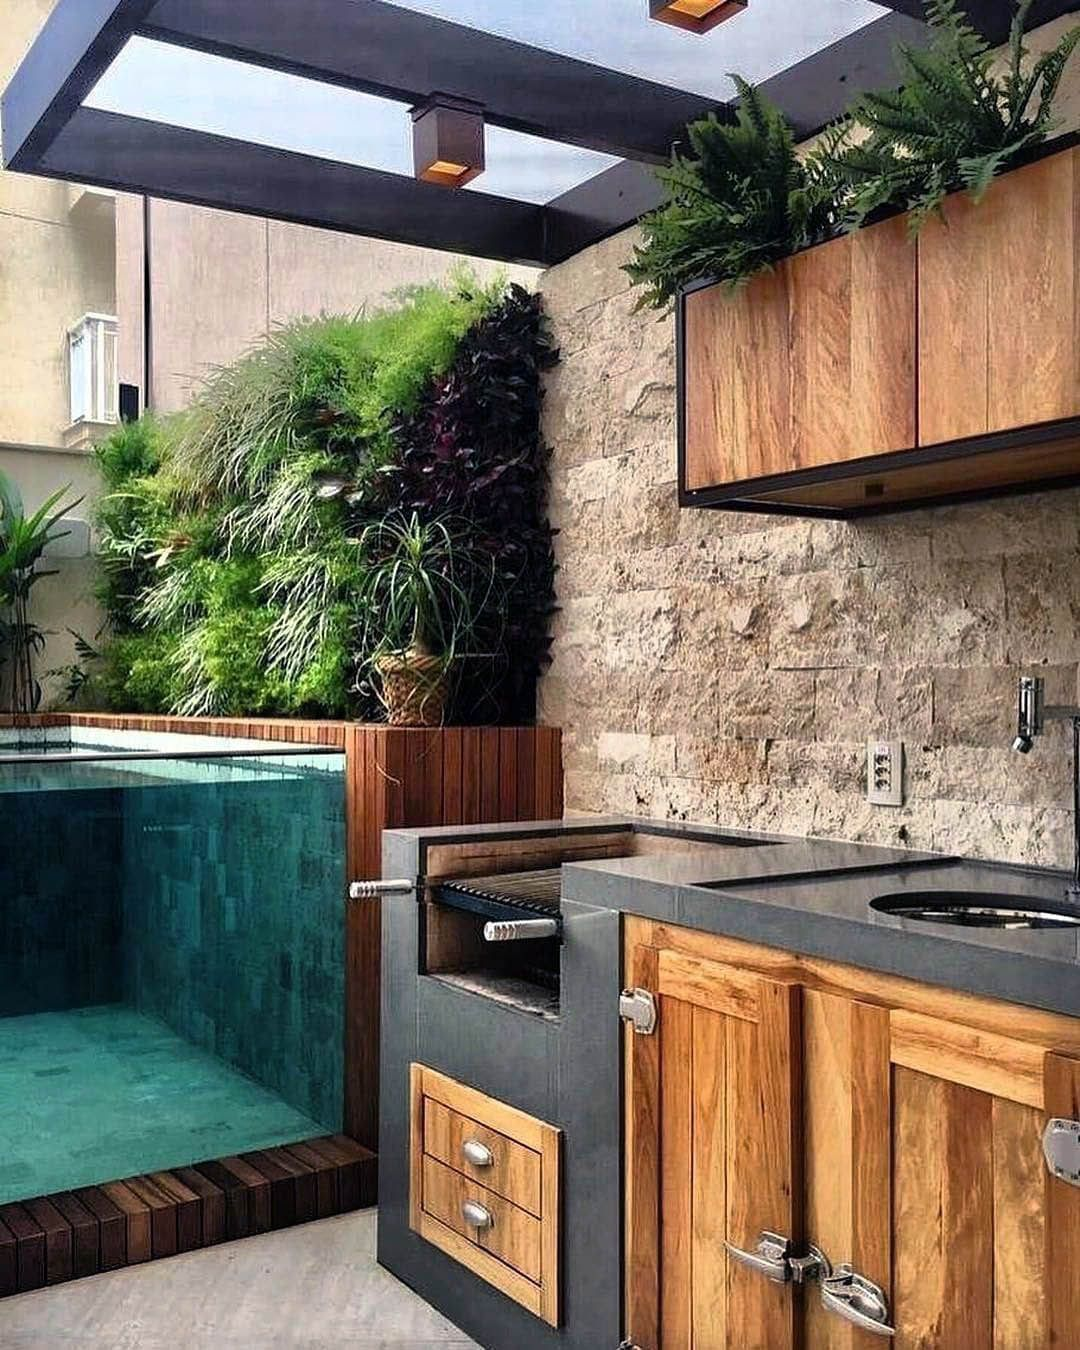 11 Best Outdoor Kitchen Ideas And Designs For Your Stunning Kitchen Outdoor Kitchen Design Outdoor Kitchen Kitchen Design Small